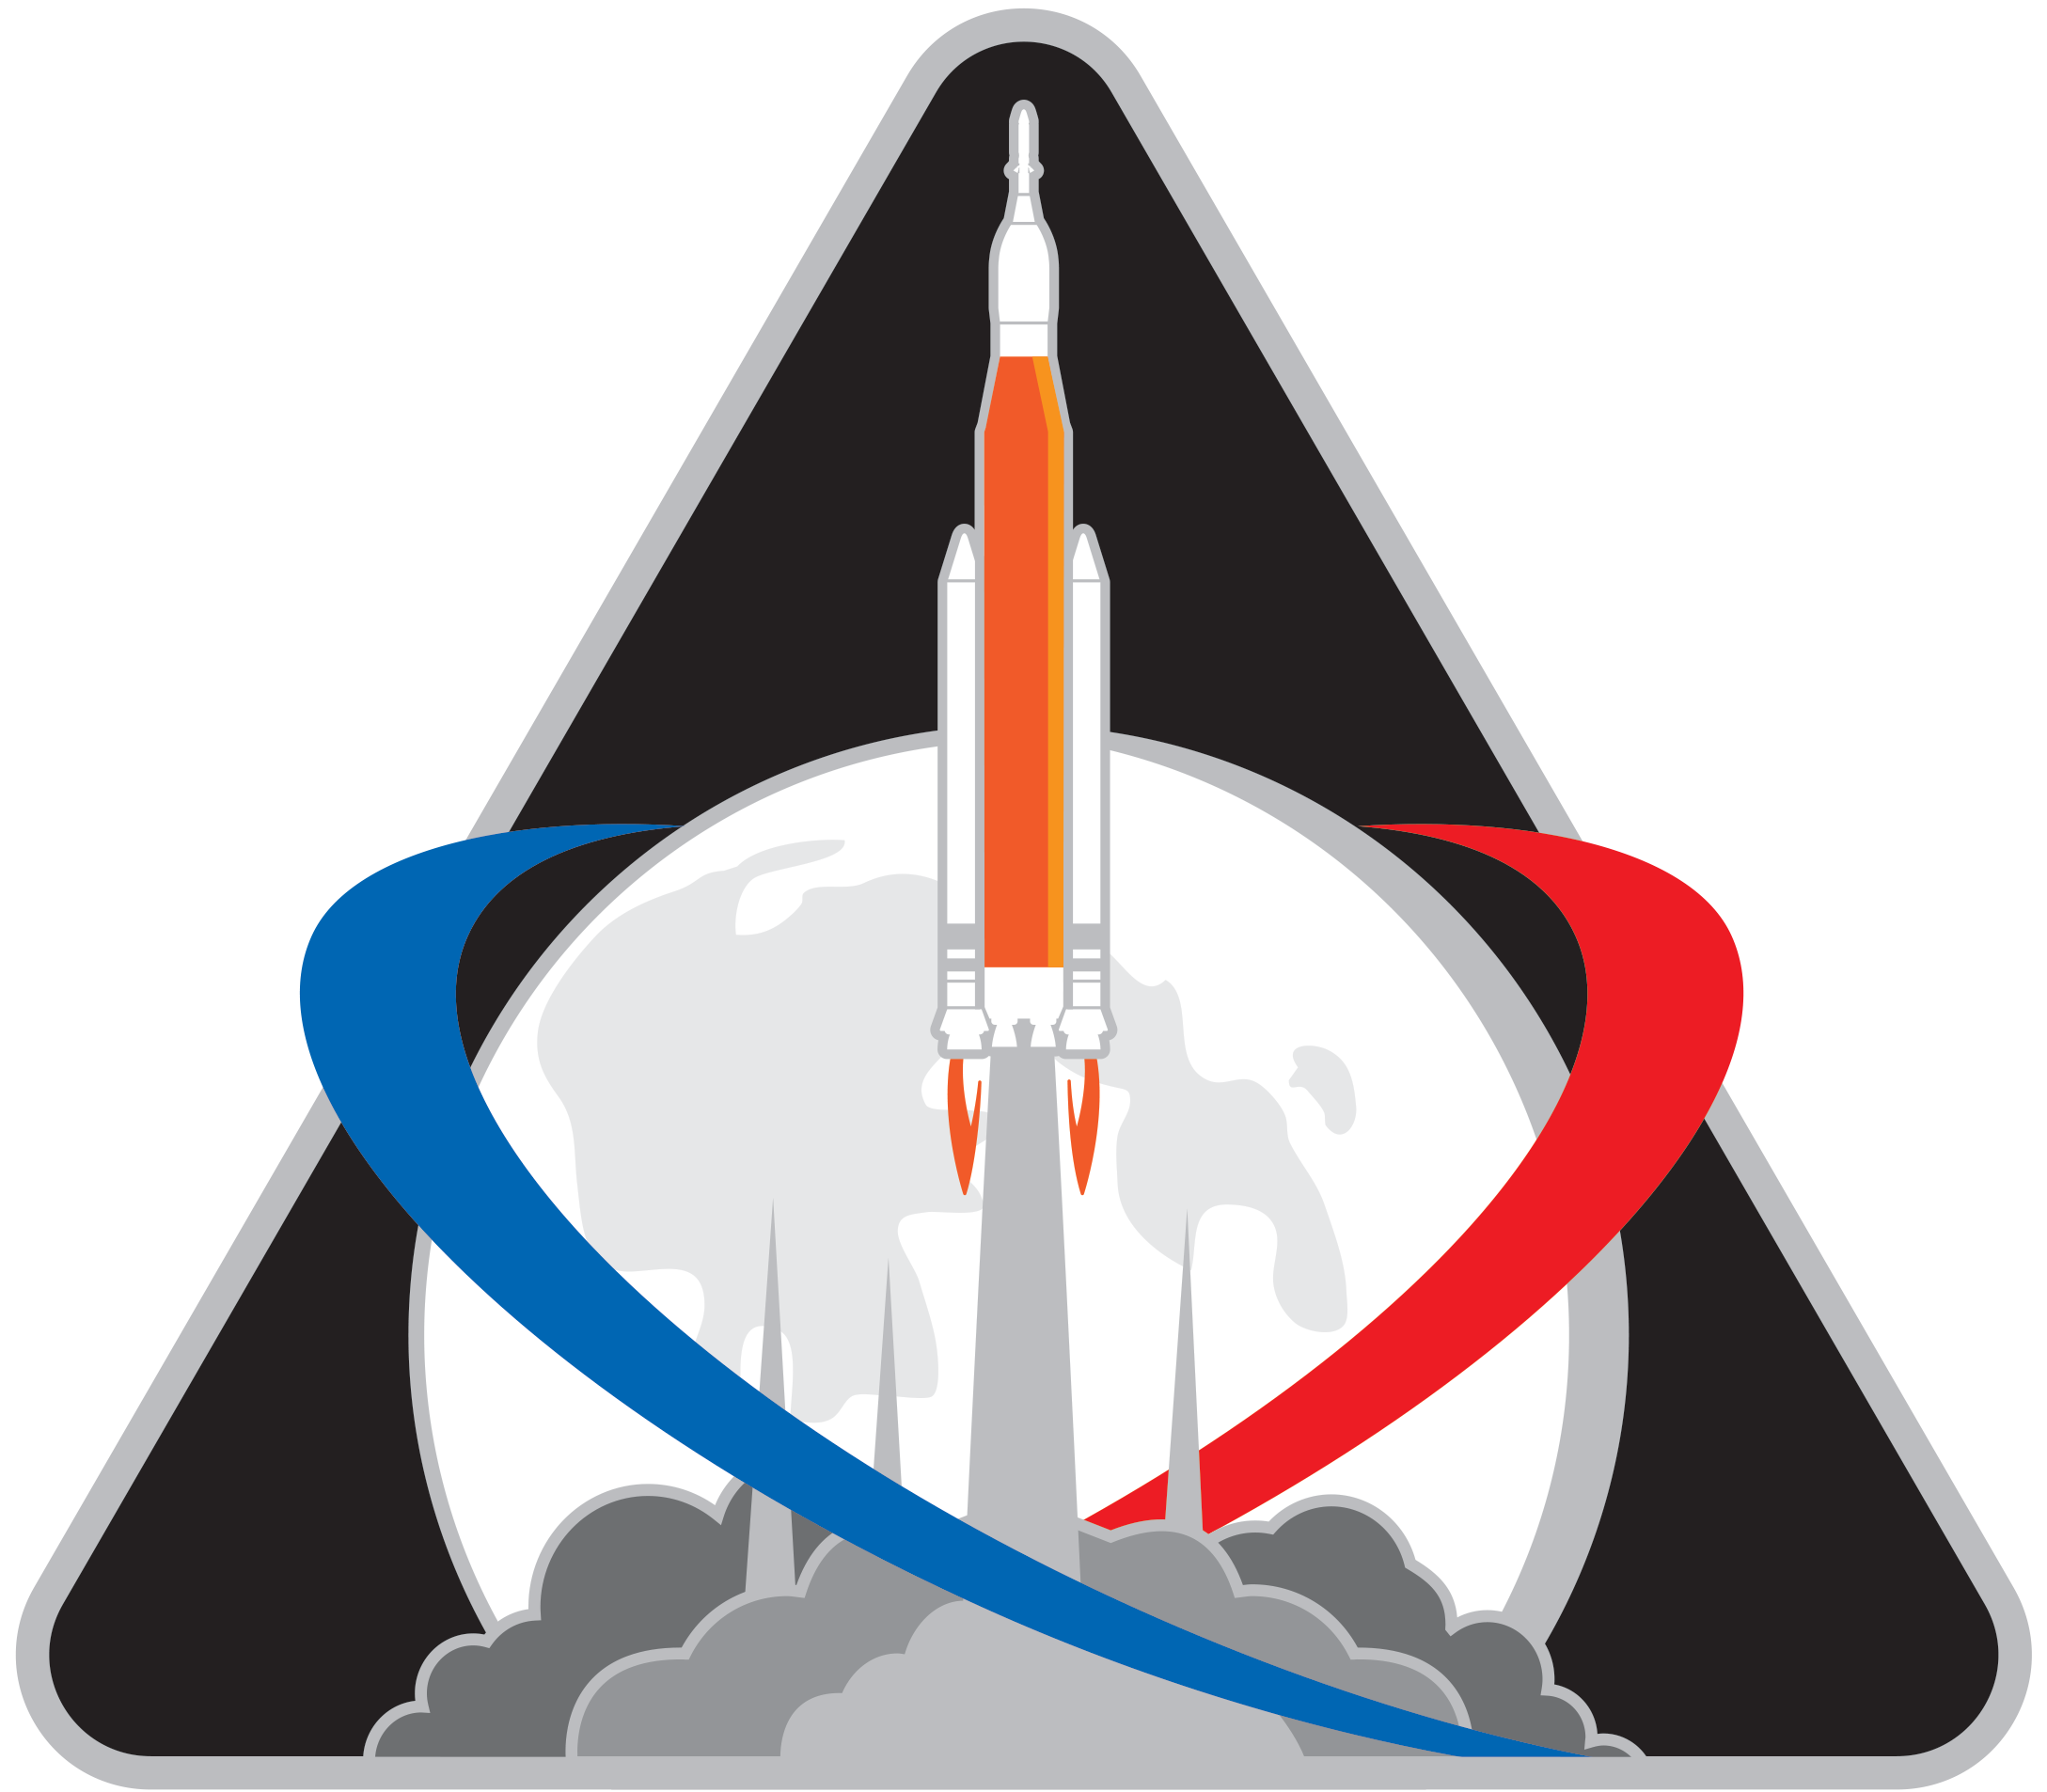 https://www.nasa.gov/sites/default/files/thumbnails/image/em1_patch_final.png